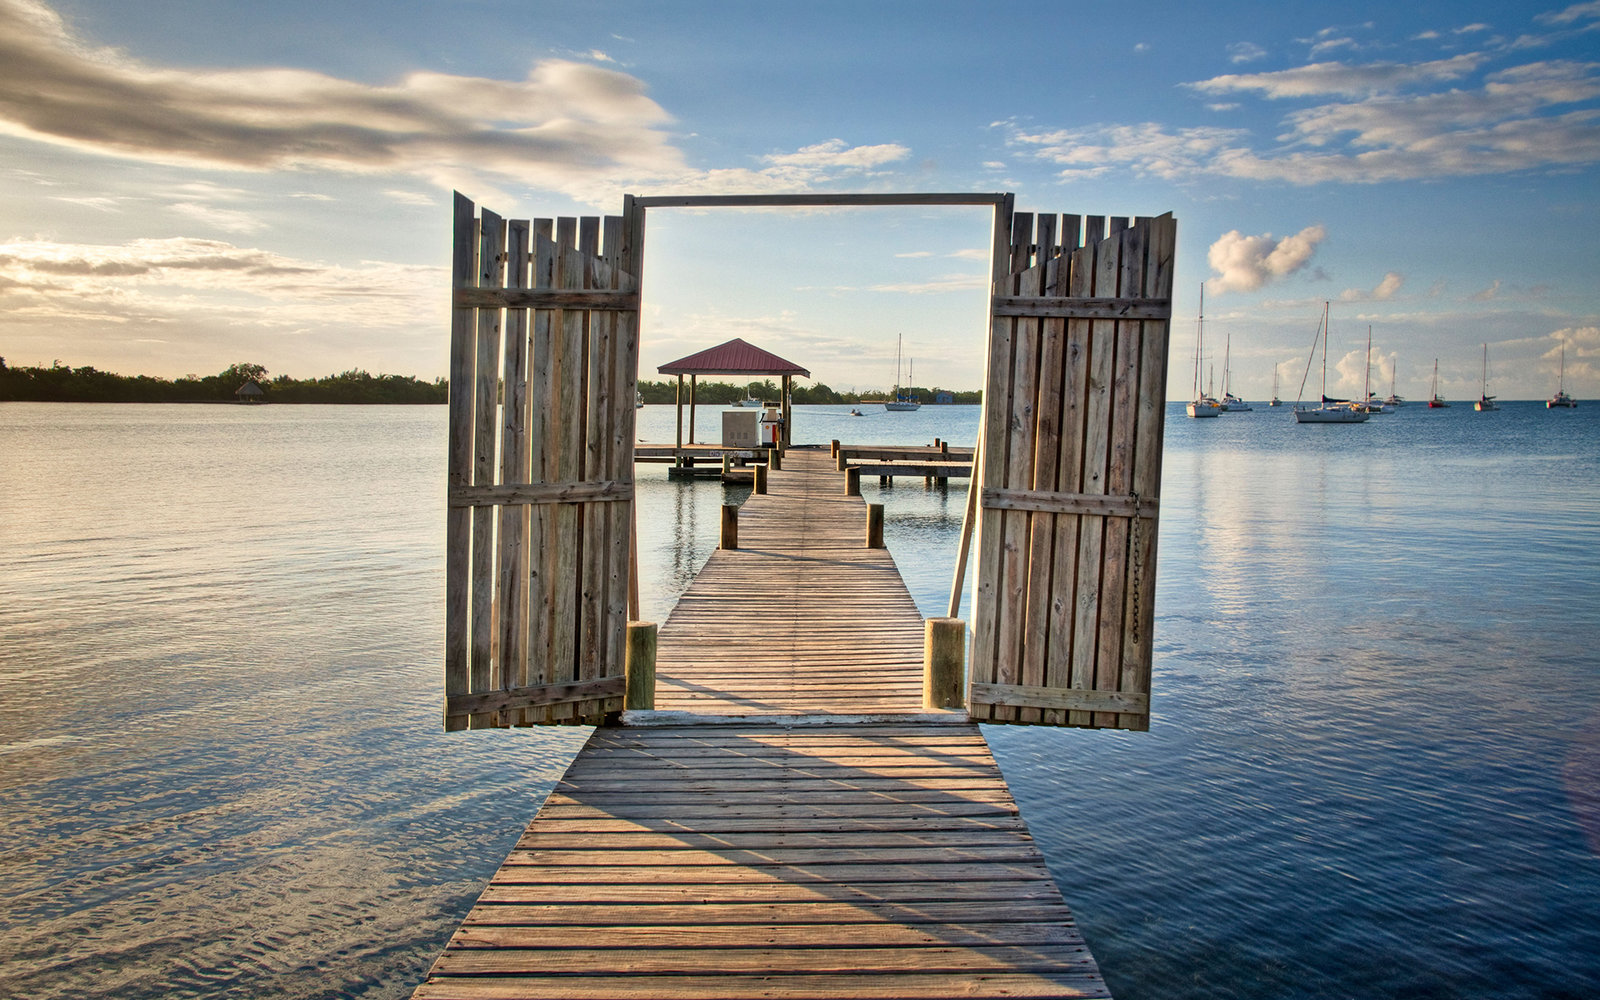 BHGYX4 main dock at sunrise in Placencia, Belize